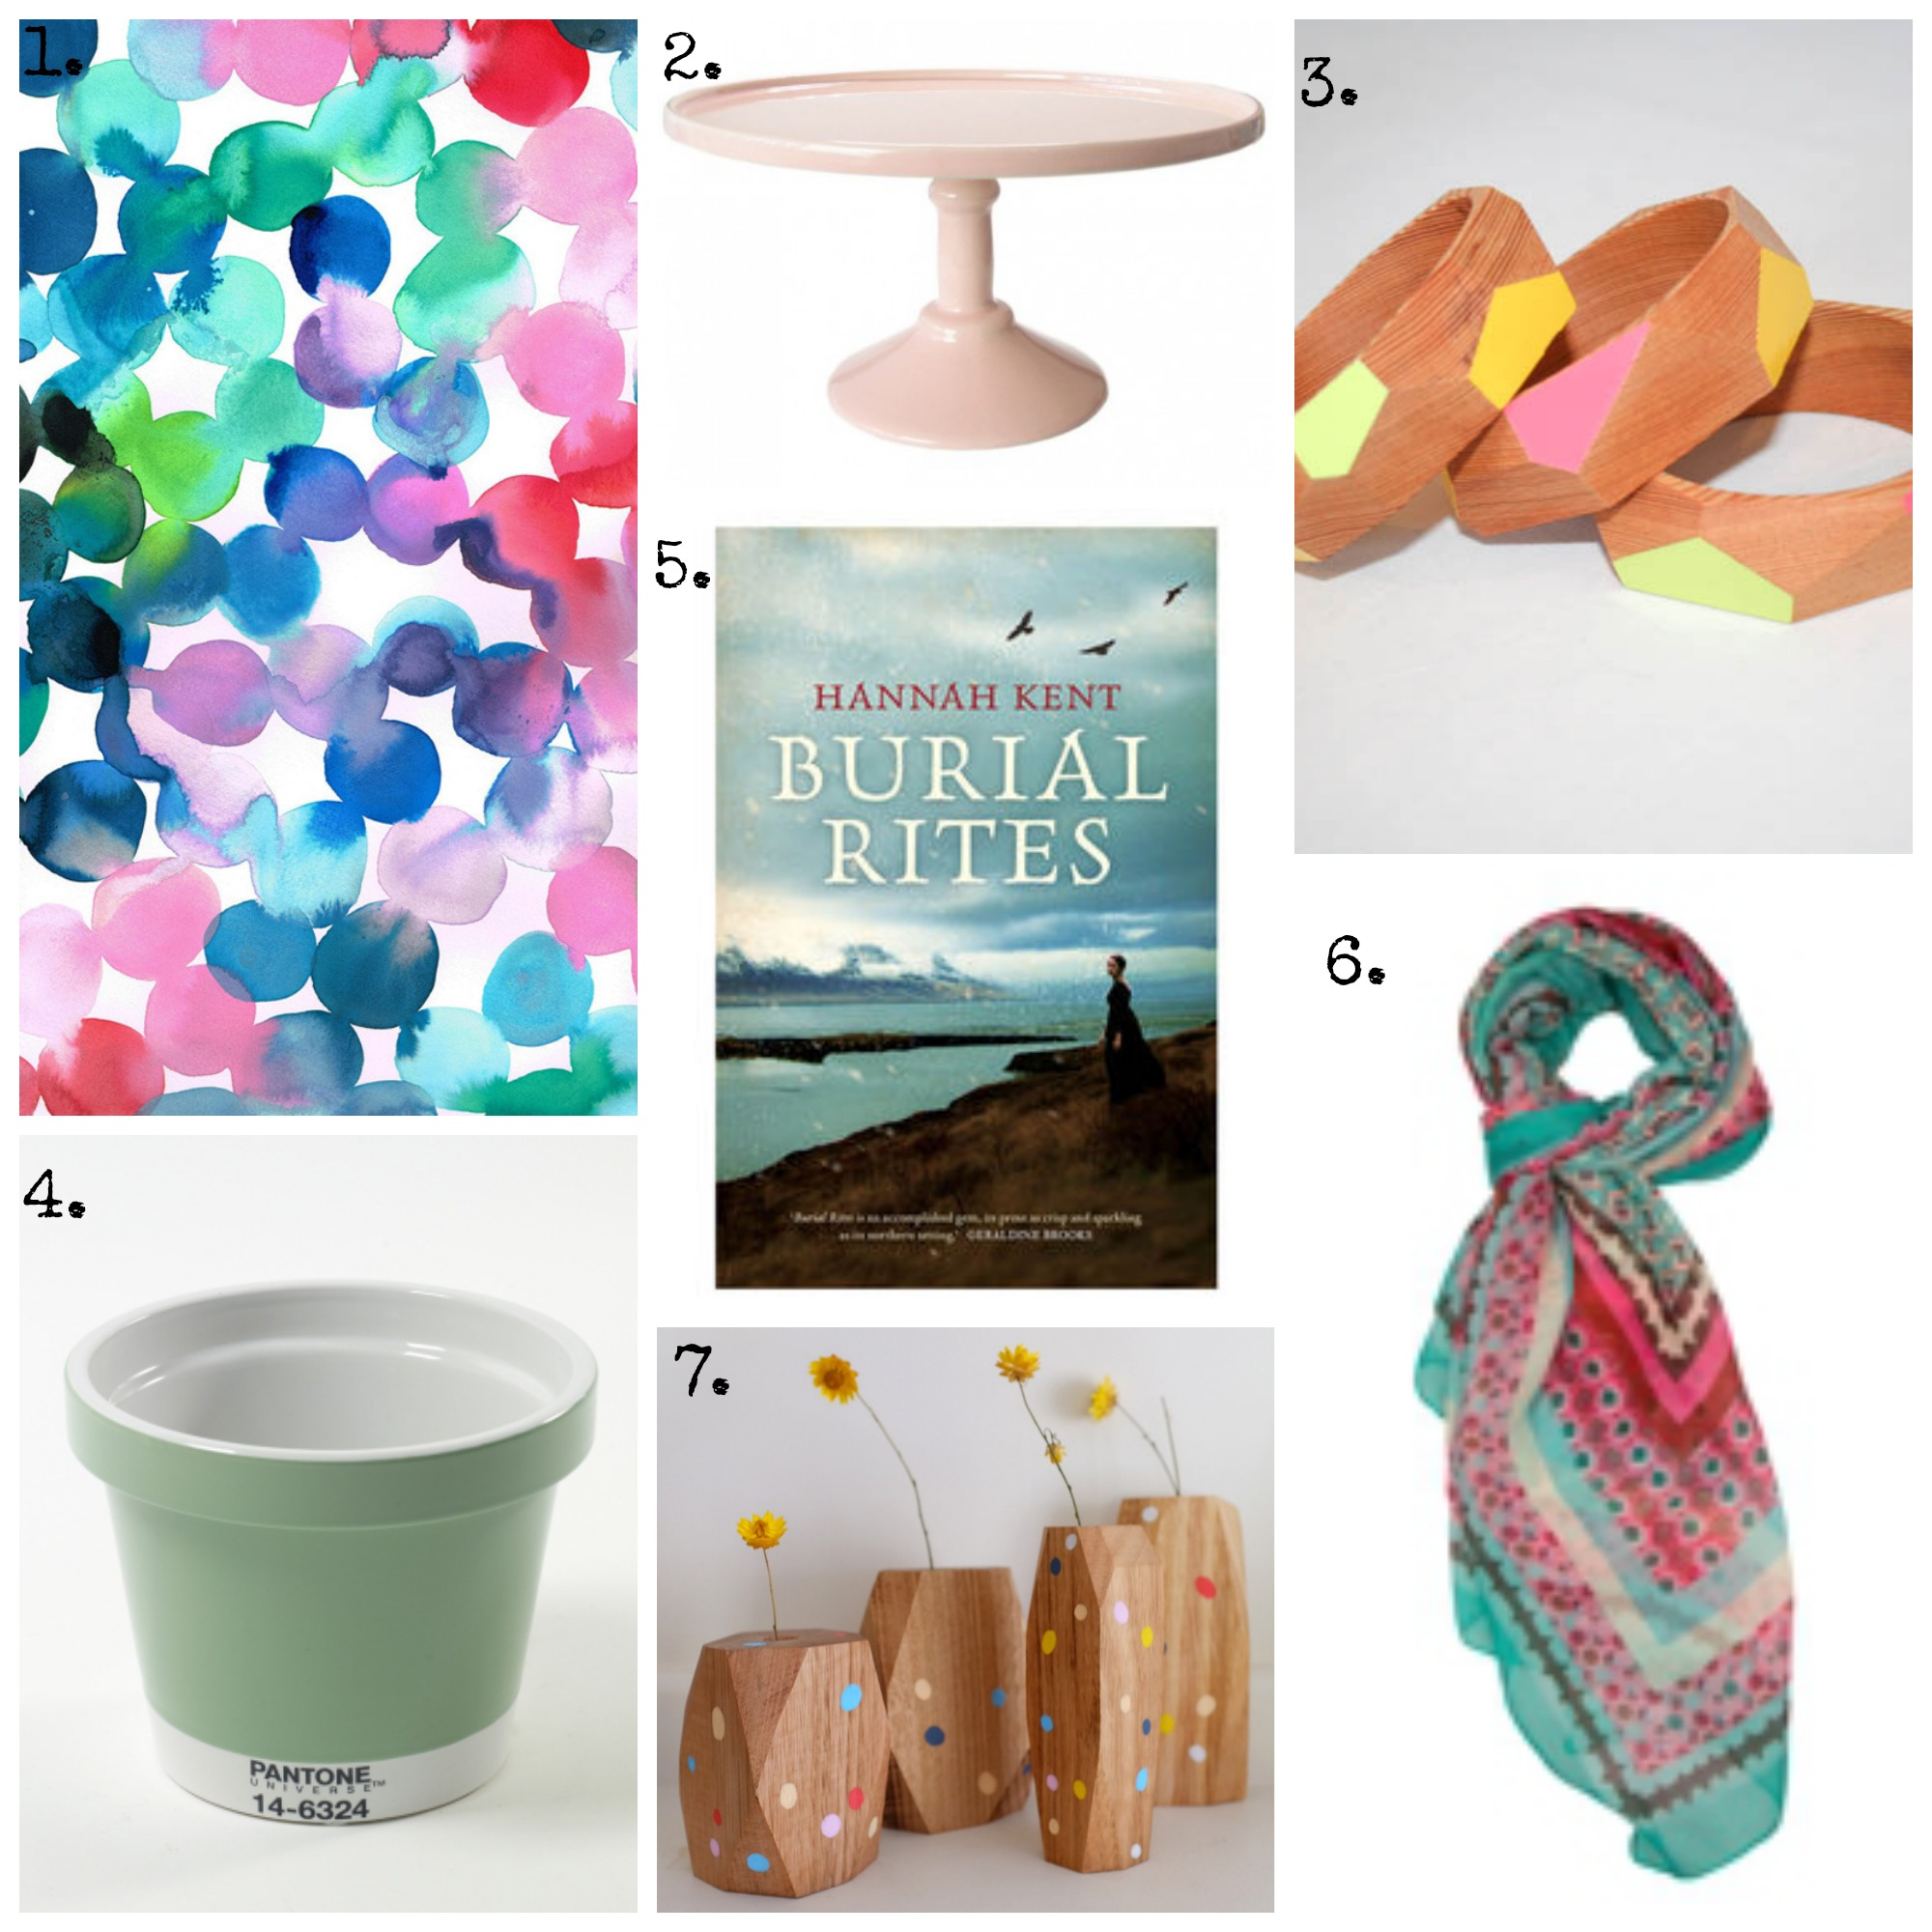 The Top 7: Gorgeous Gift Ideas for Women - Style & Shenanigans